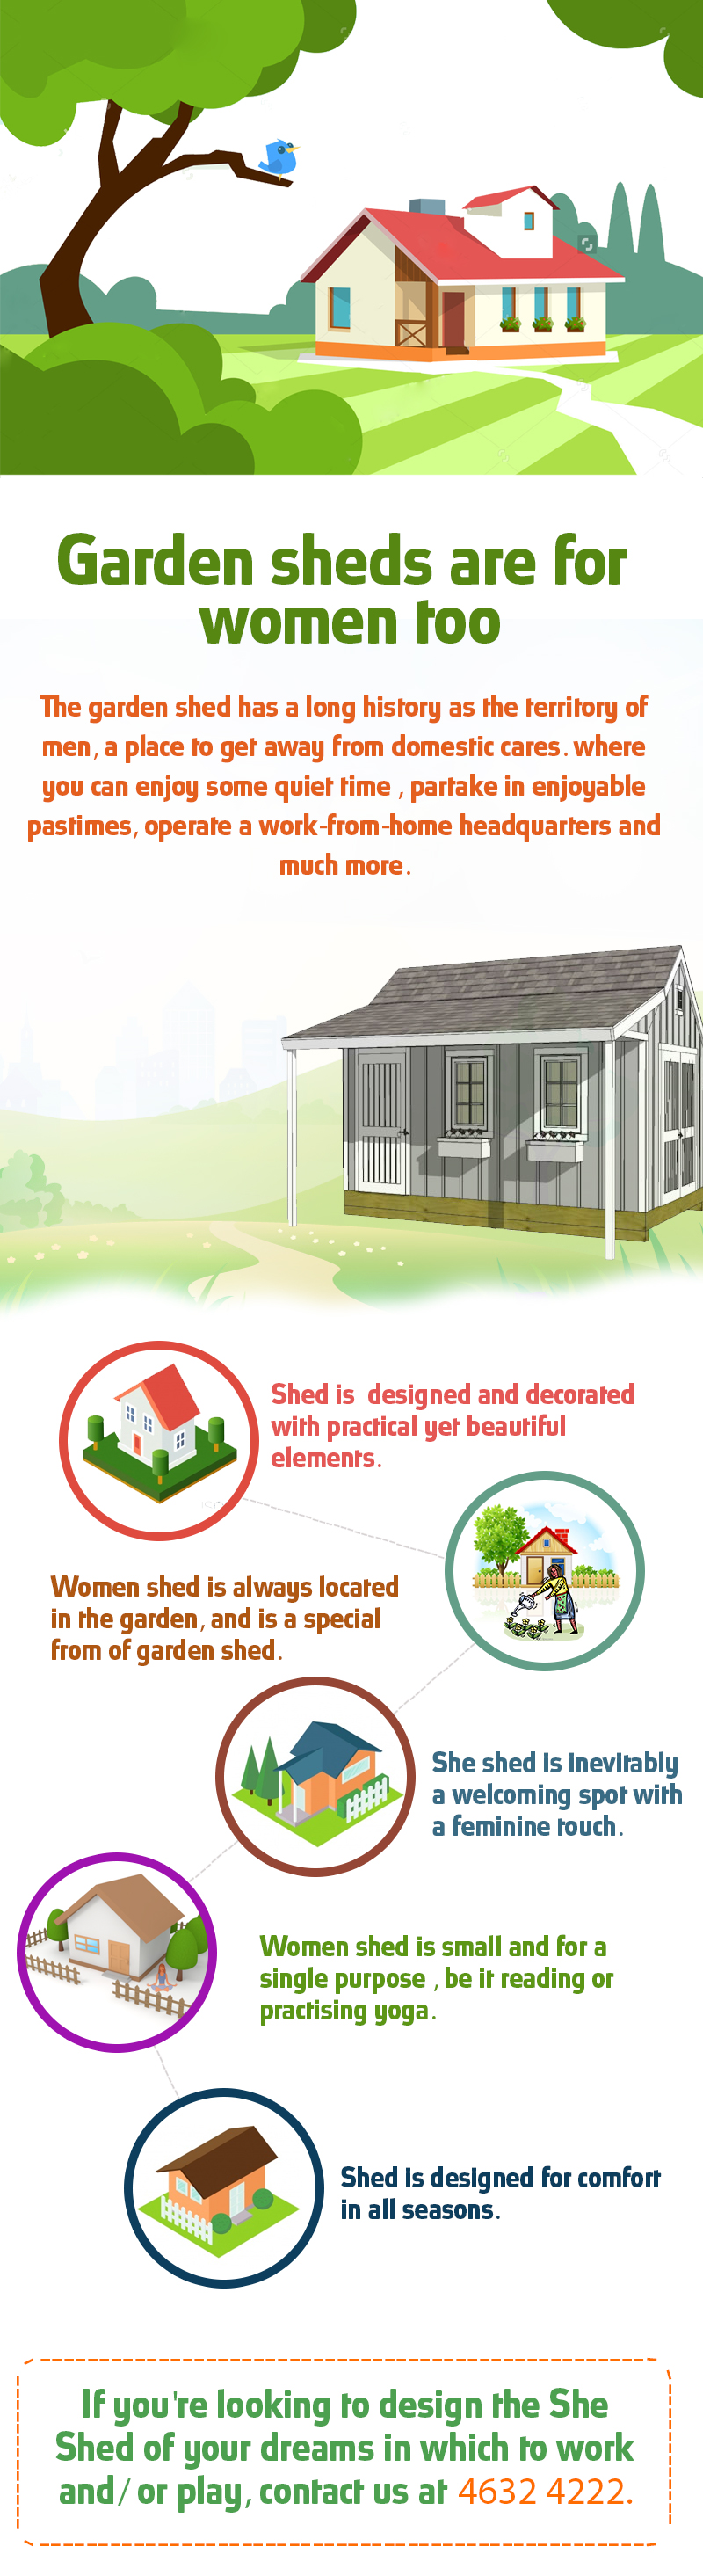 Garden sheds are for women too